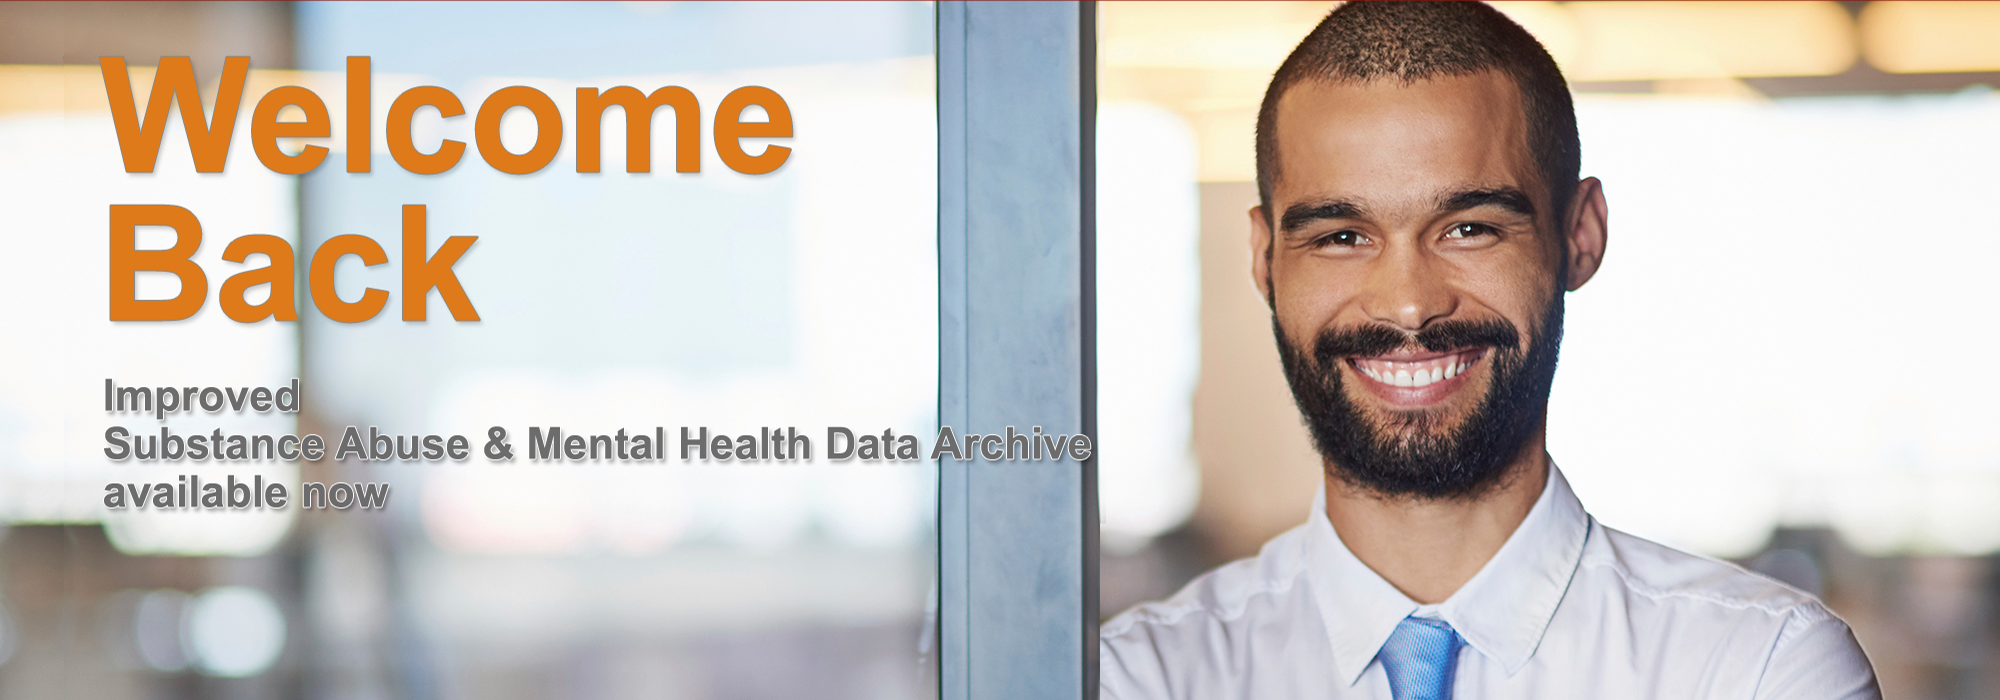 Welcome back. Improved Substance Abuse and Mental Health Data Archive available now.